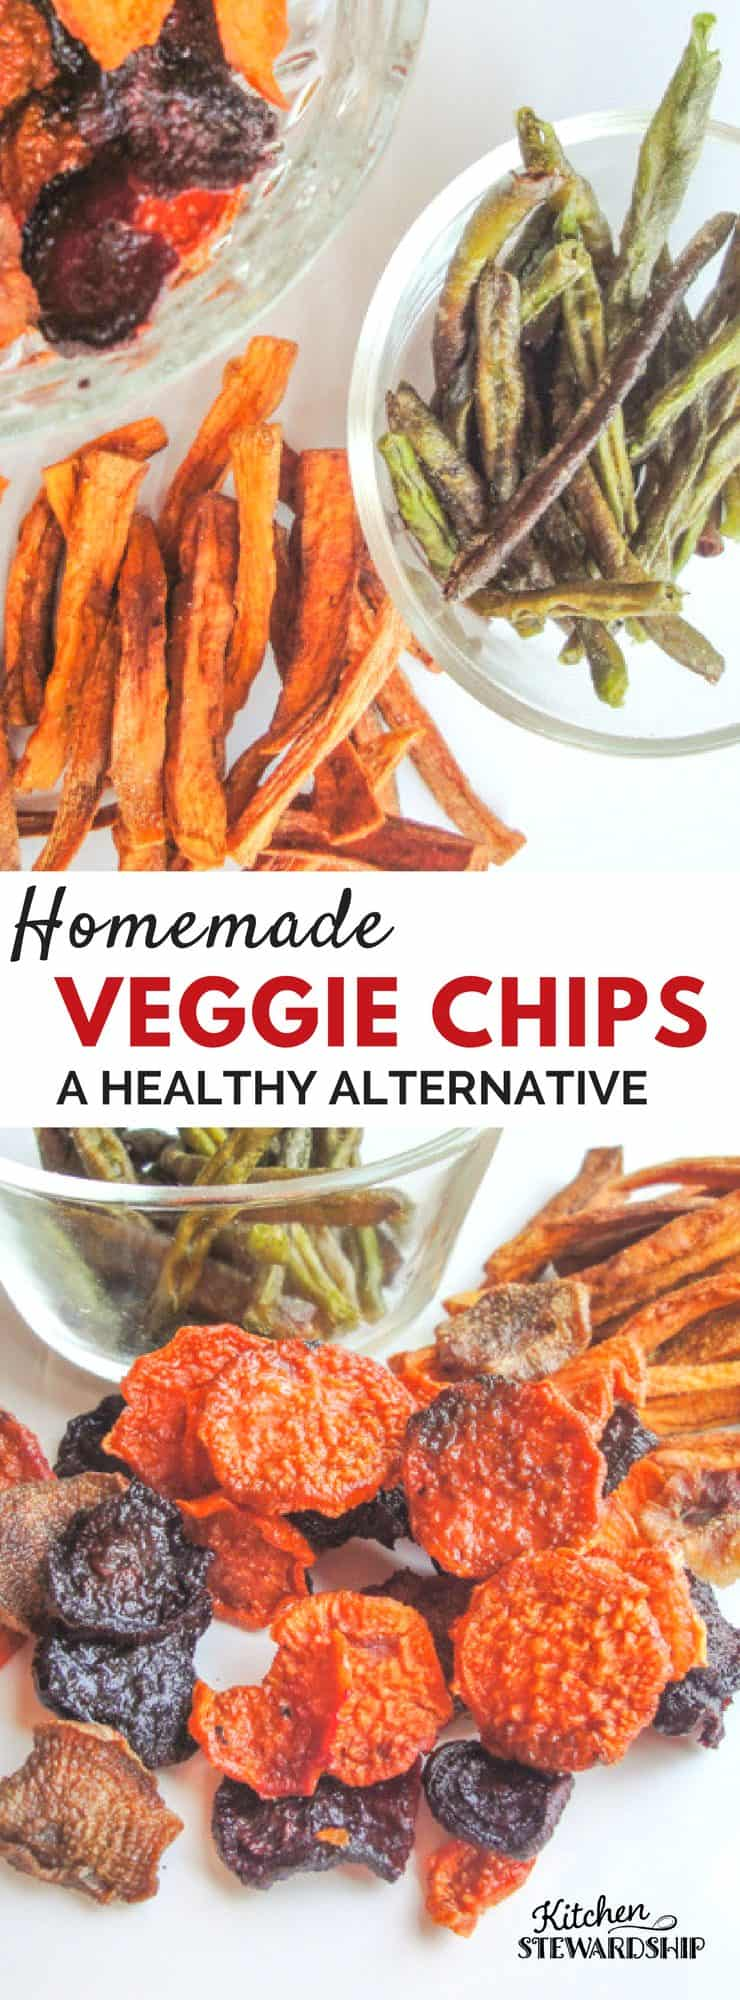 Looking for a real food alternative to potato chips and french fries? Try these homemade veggie chips and crispy green beans! The perfect healthy snack.